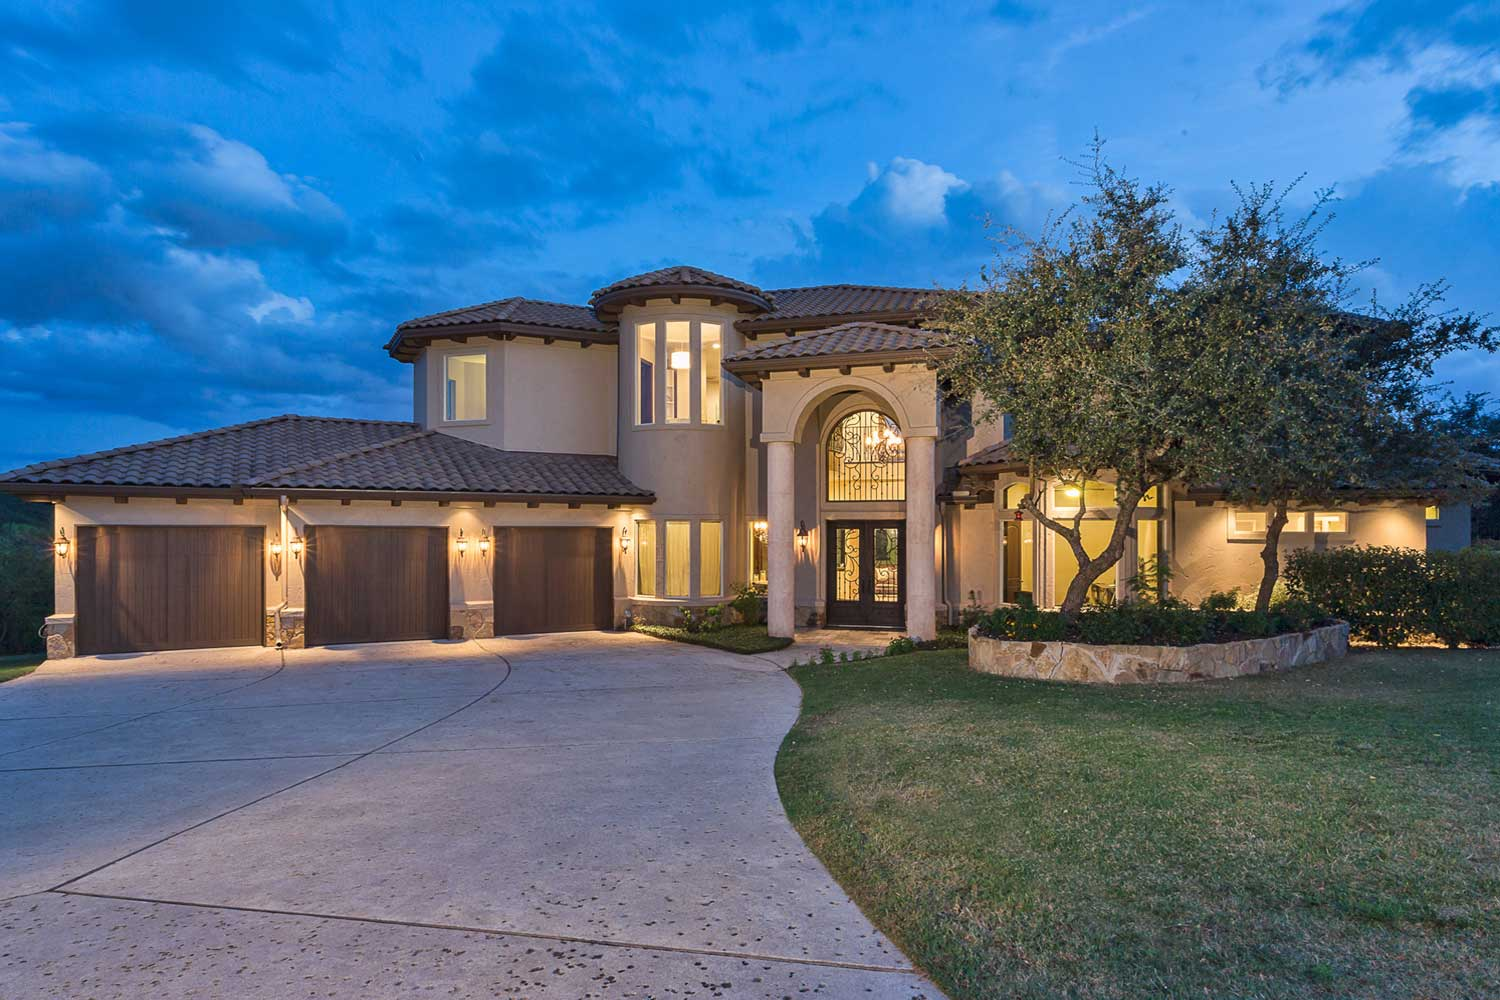 <b>Austin, Texas</b><br/><i>5 Bedrooms, 4,600 sq. ft.</i><br/>Tuscan-inspired estate home in Angel Pass